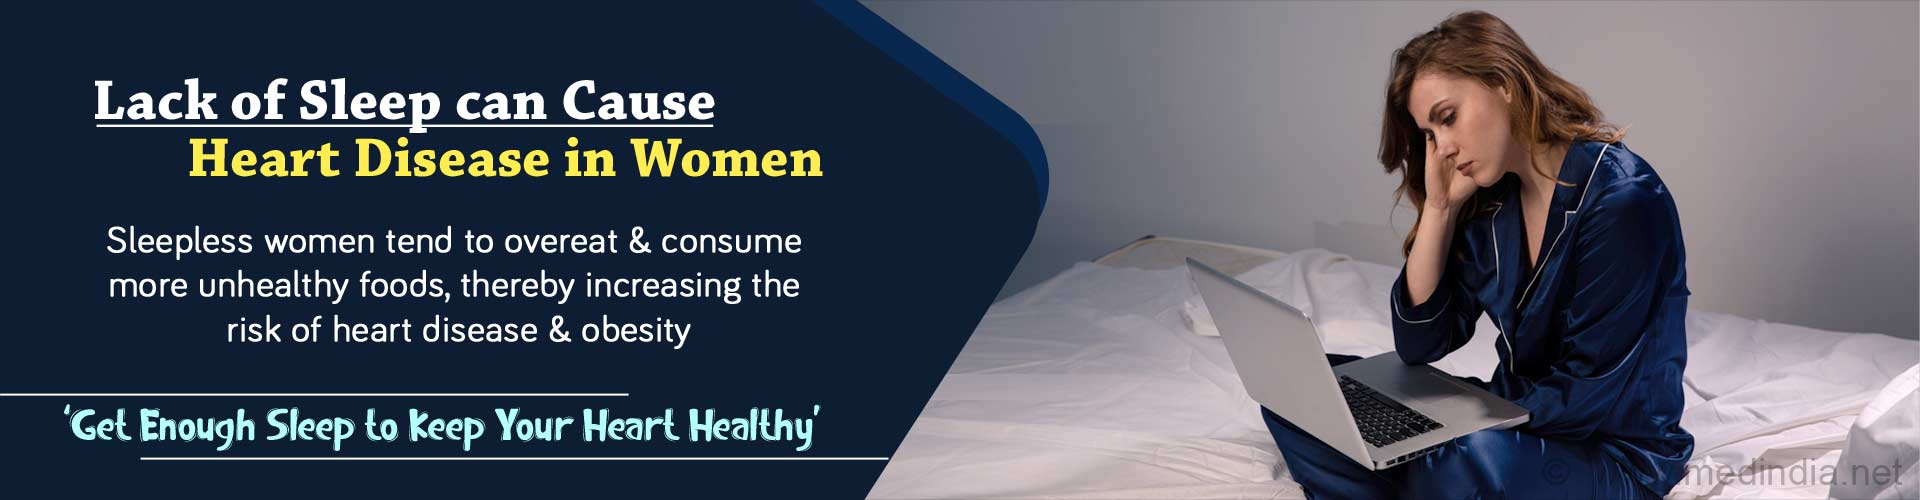 Lack of sleep can cause heart disease in women. Sleepless women tend to overeat and consume more unhealthy foods, thereby increasing the risk of heart disease and obesity. Get enough sleep to keep your heart healthy.